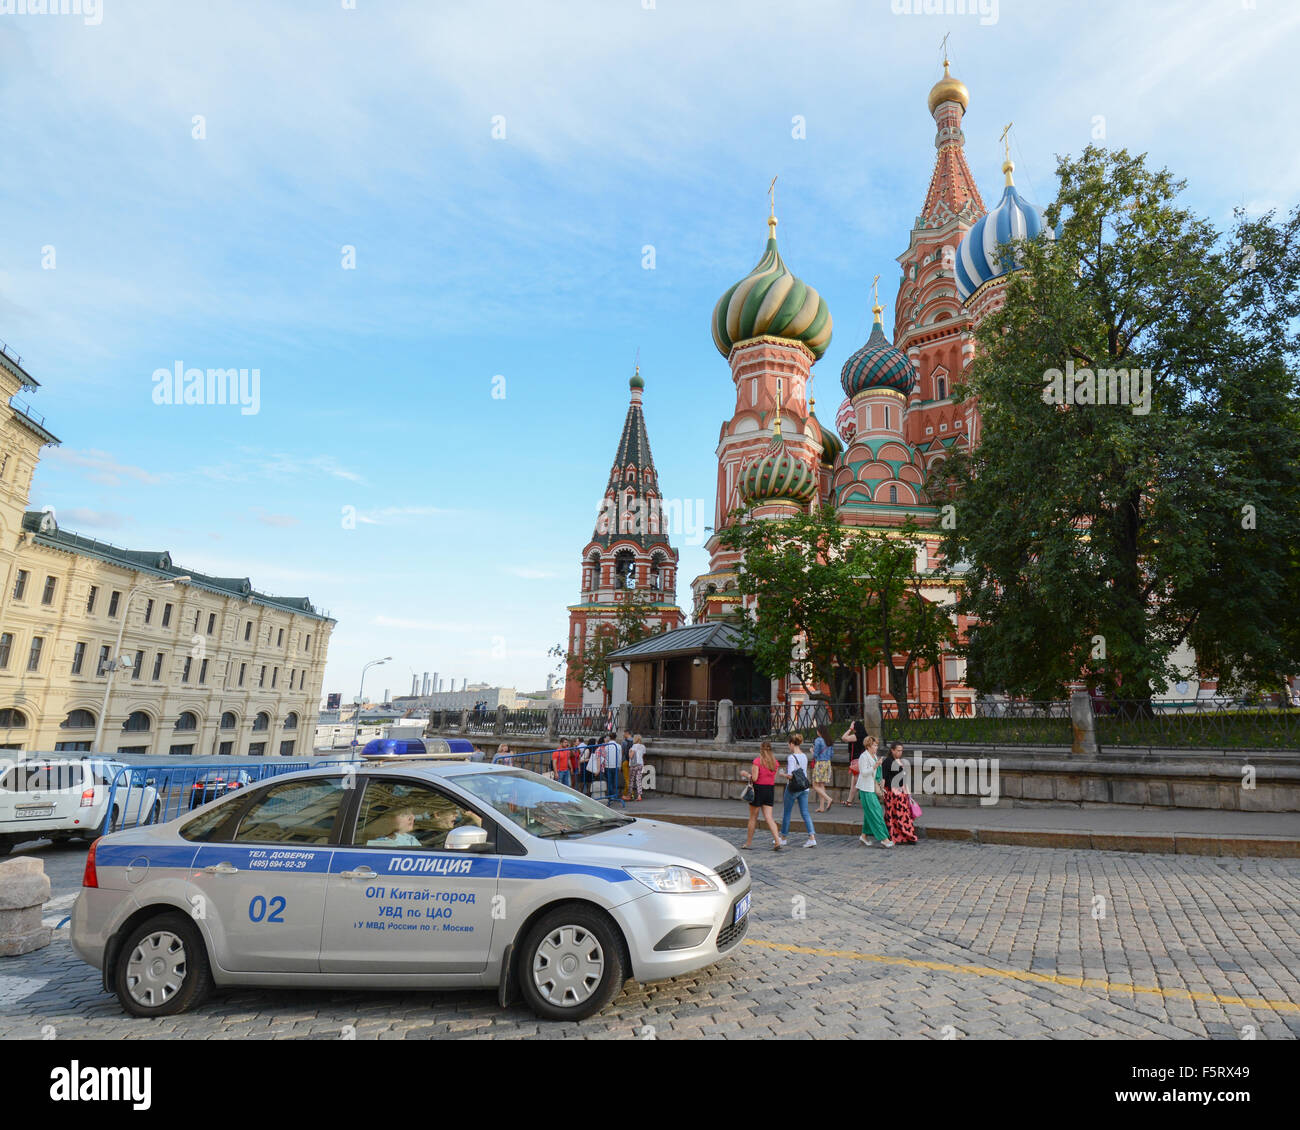 Moscow police car parked by St Basil's Cathedral, Moscow, Russia Stock Photo